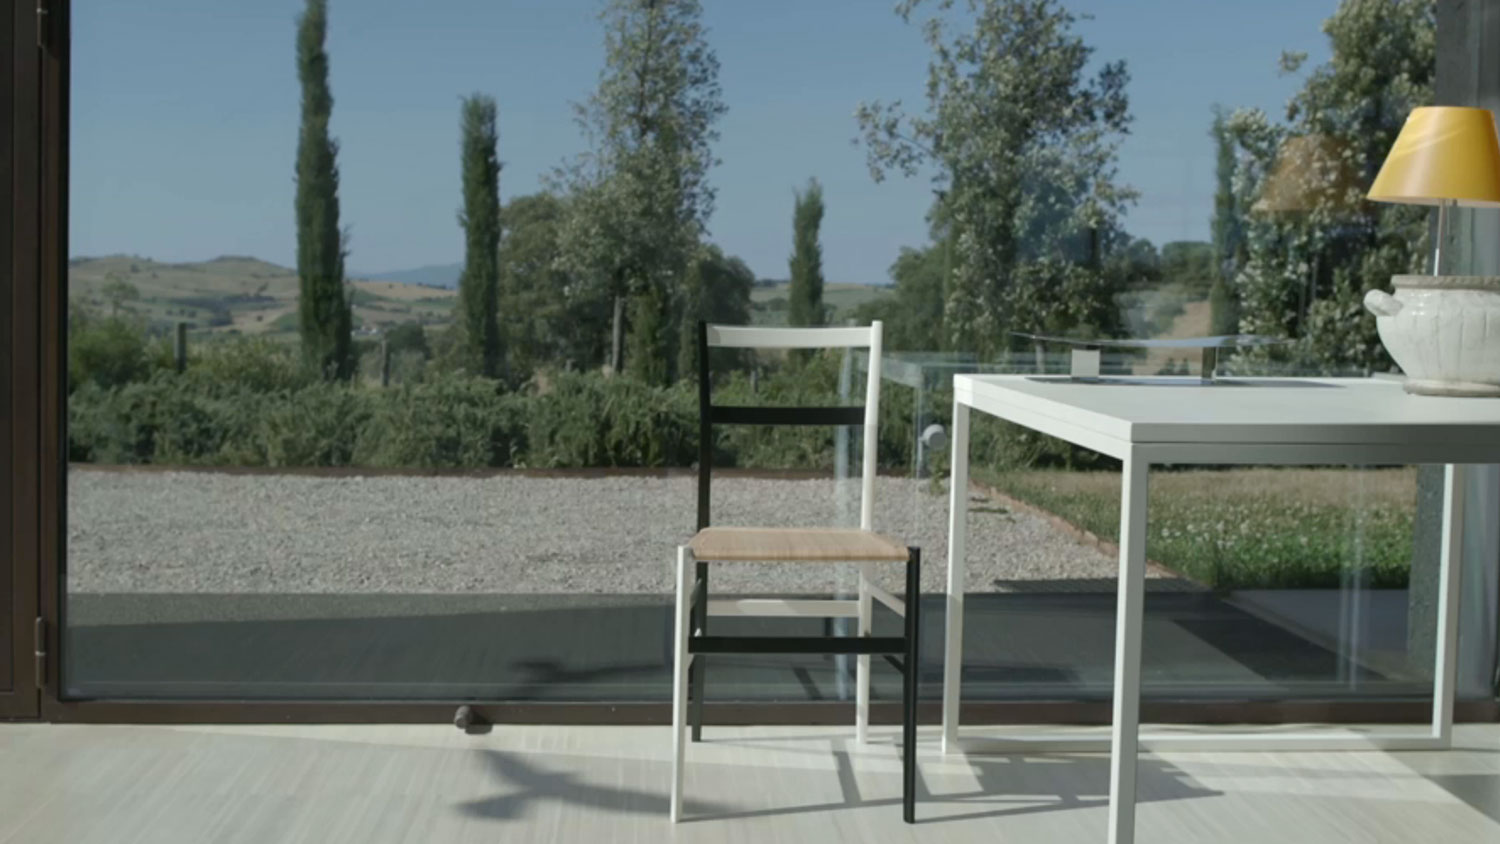 Piero Lissoni's Summer House in Tuscany, Italy | Yellowtrace.